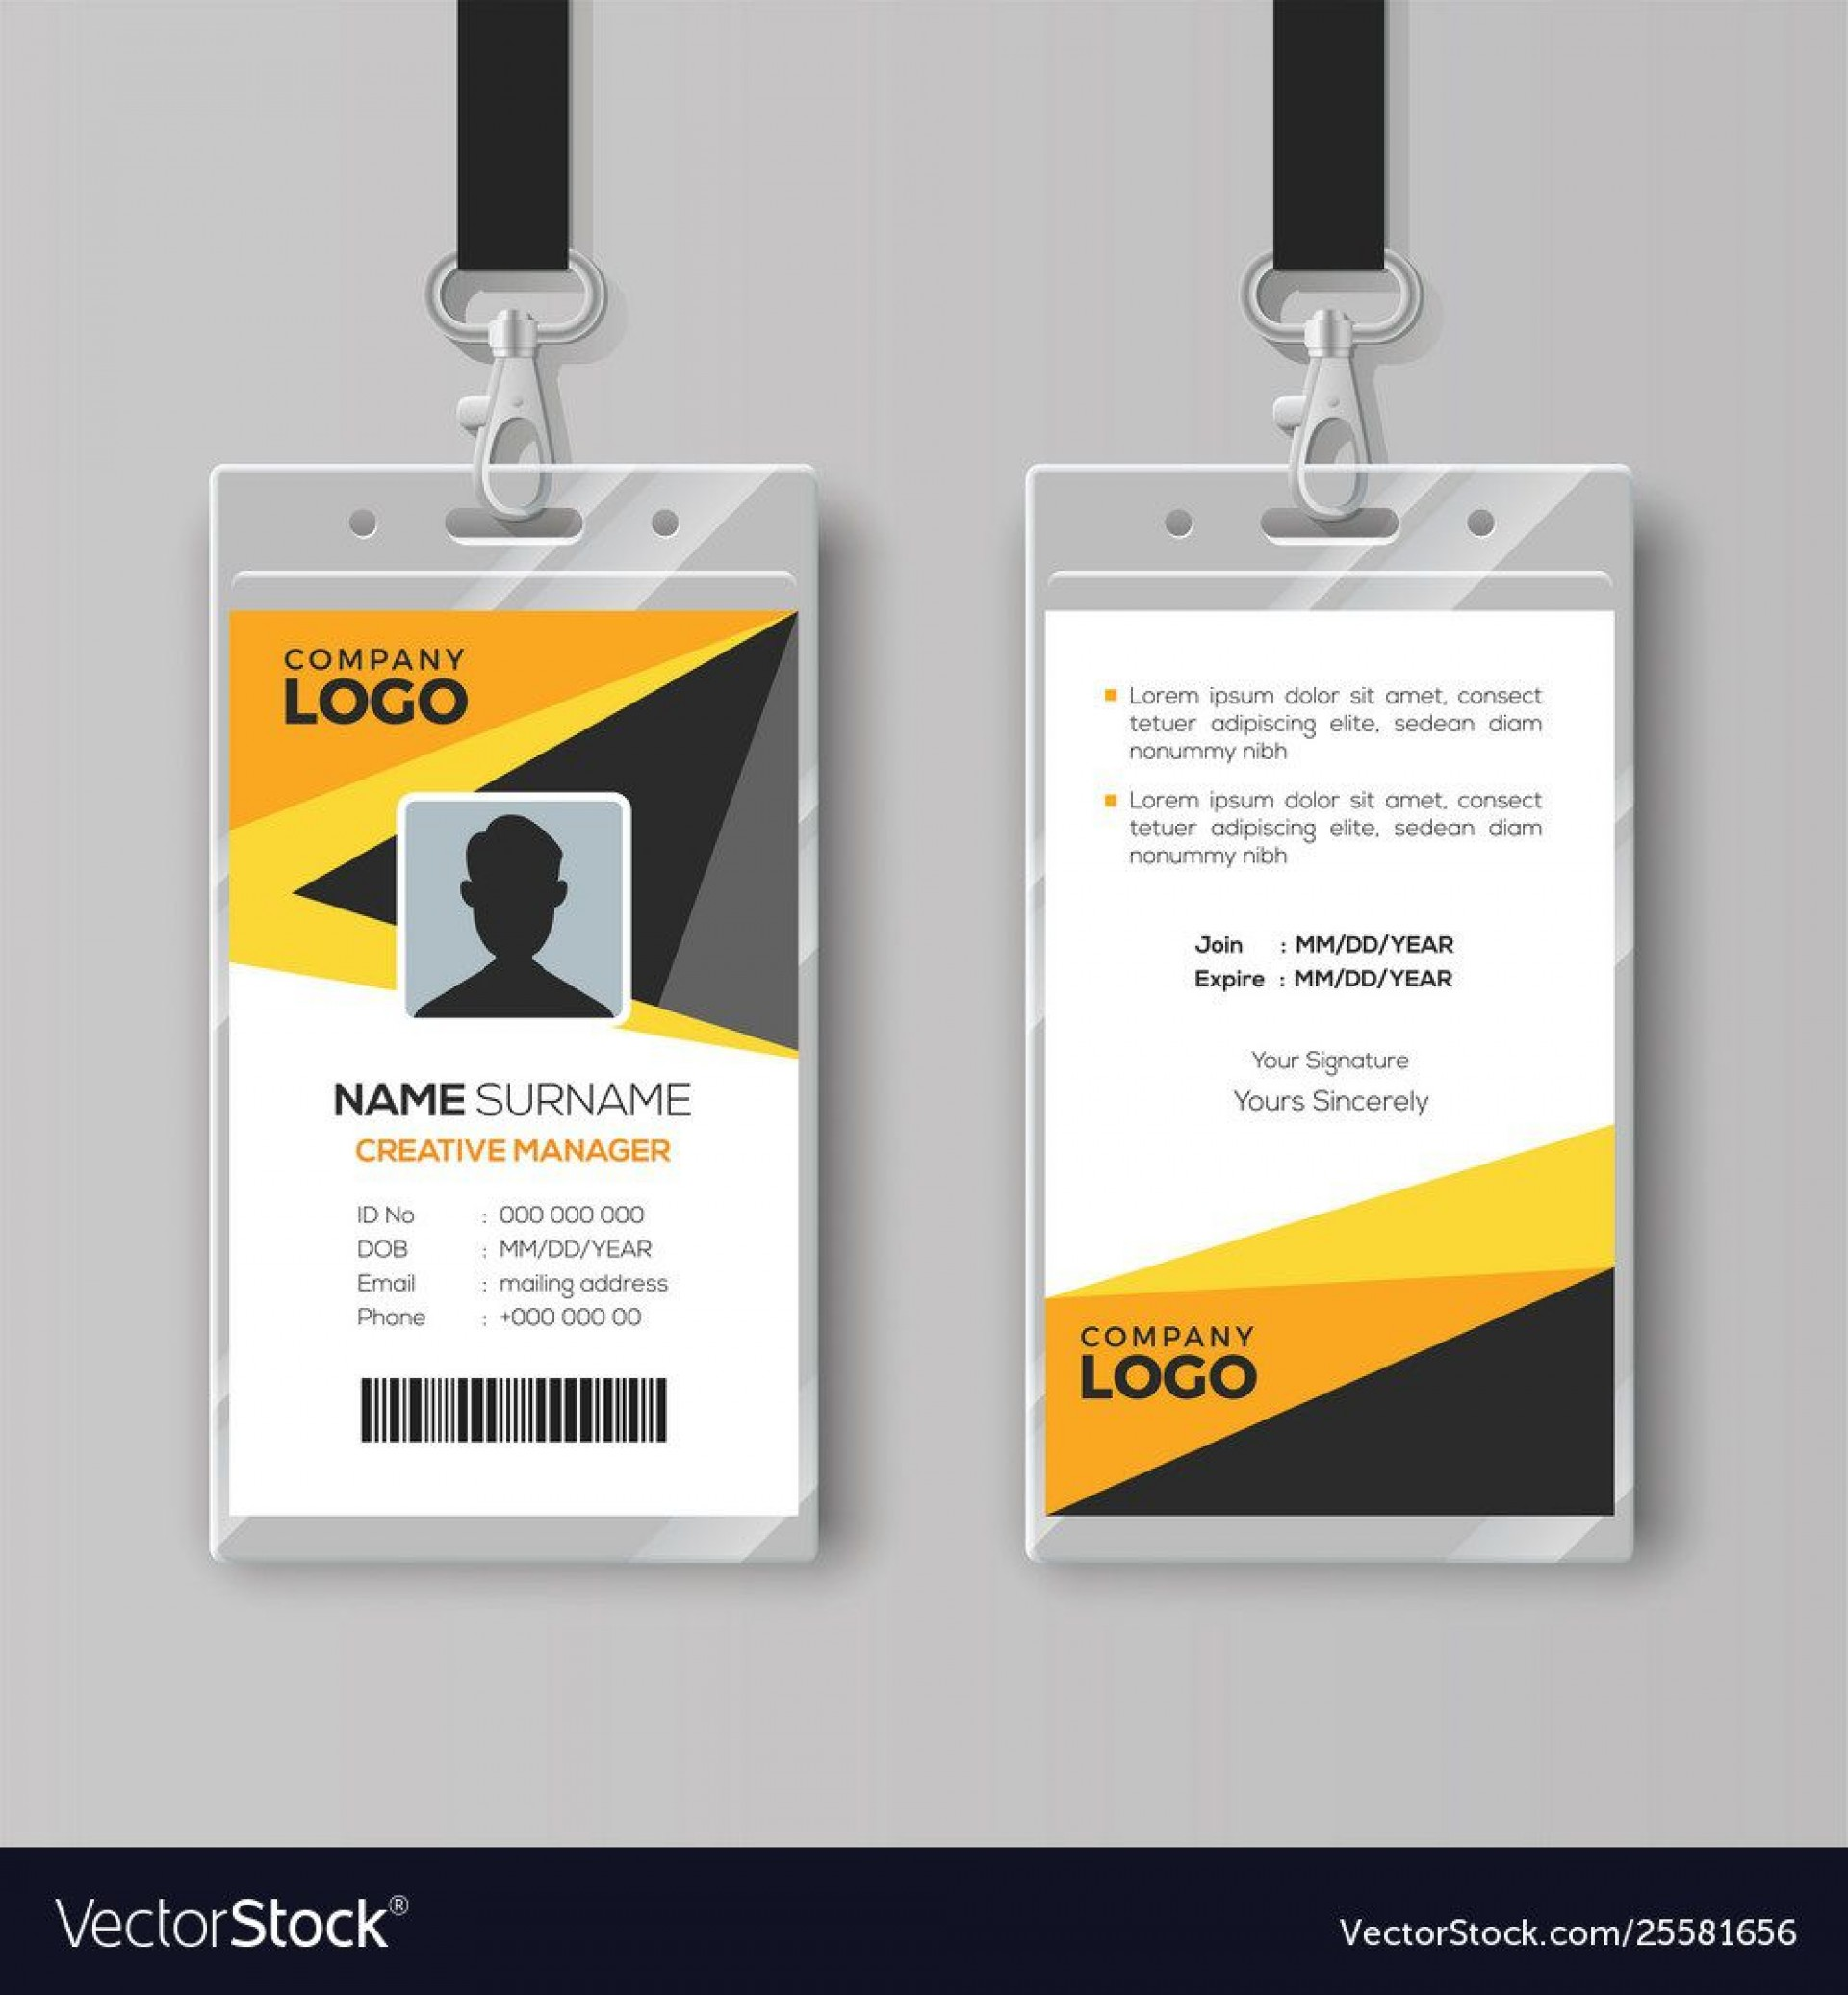 009 Excellent Free Id Badge Template High Def  Templates Card Ai Uk Illustrator1920